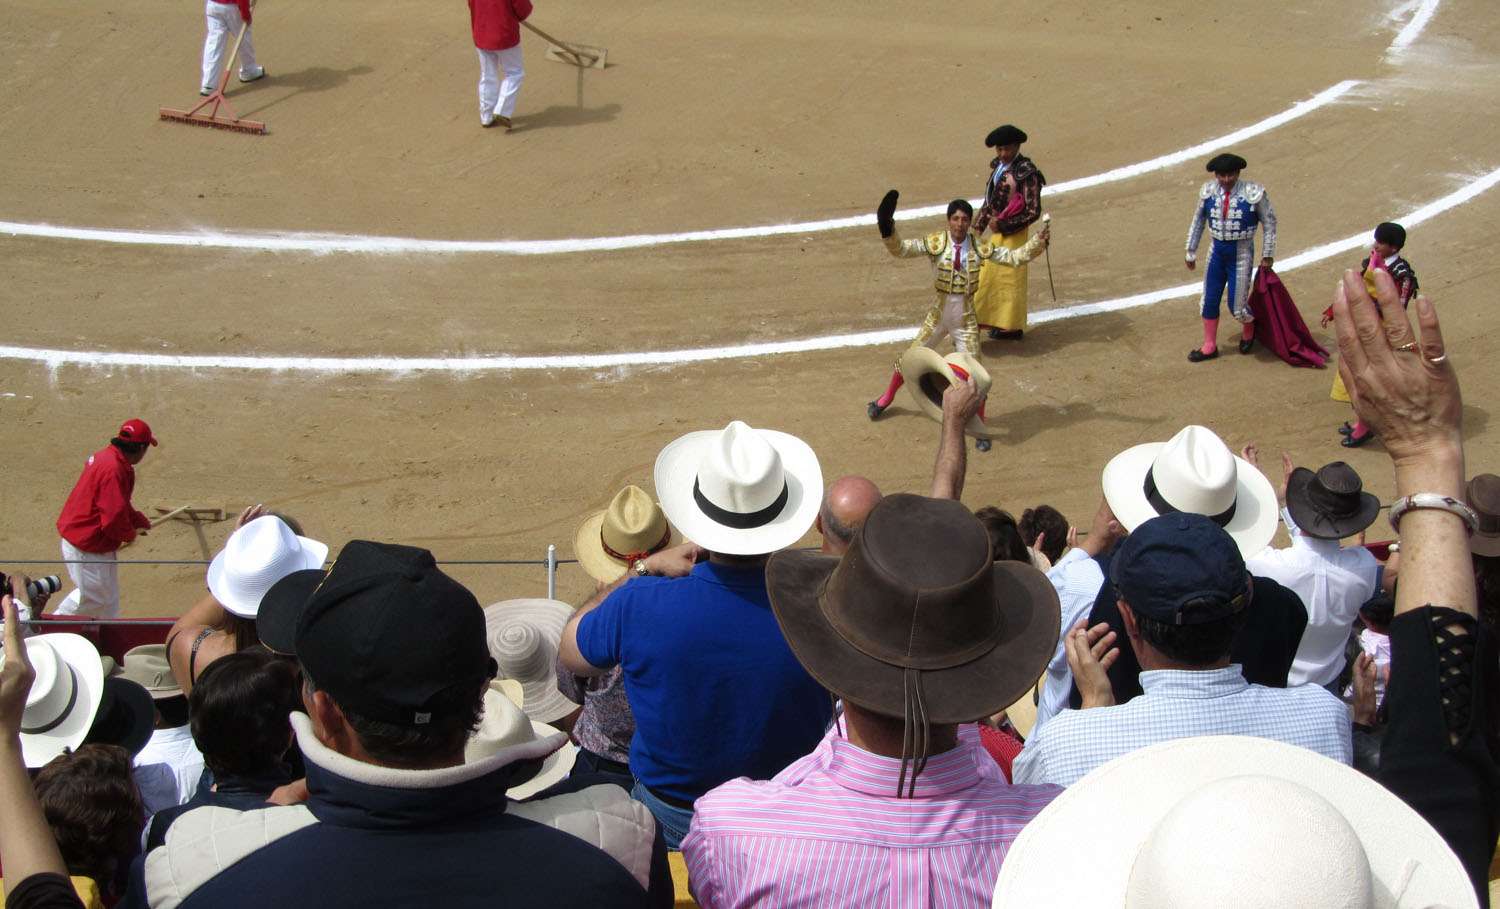 Ecuador-Quito-Bullfight-Hats-Flowers-Wineskins